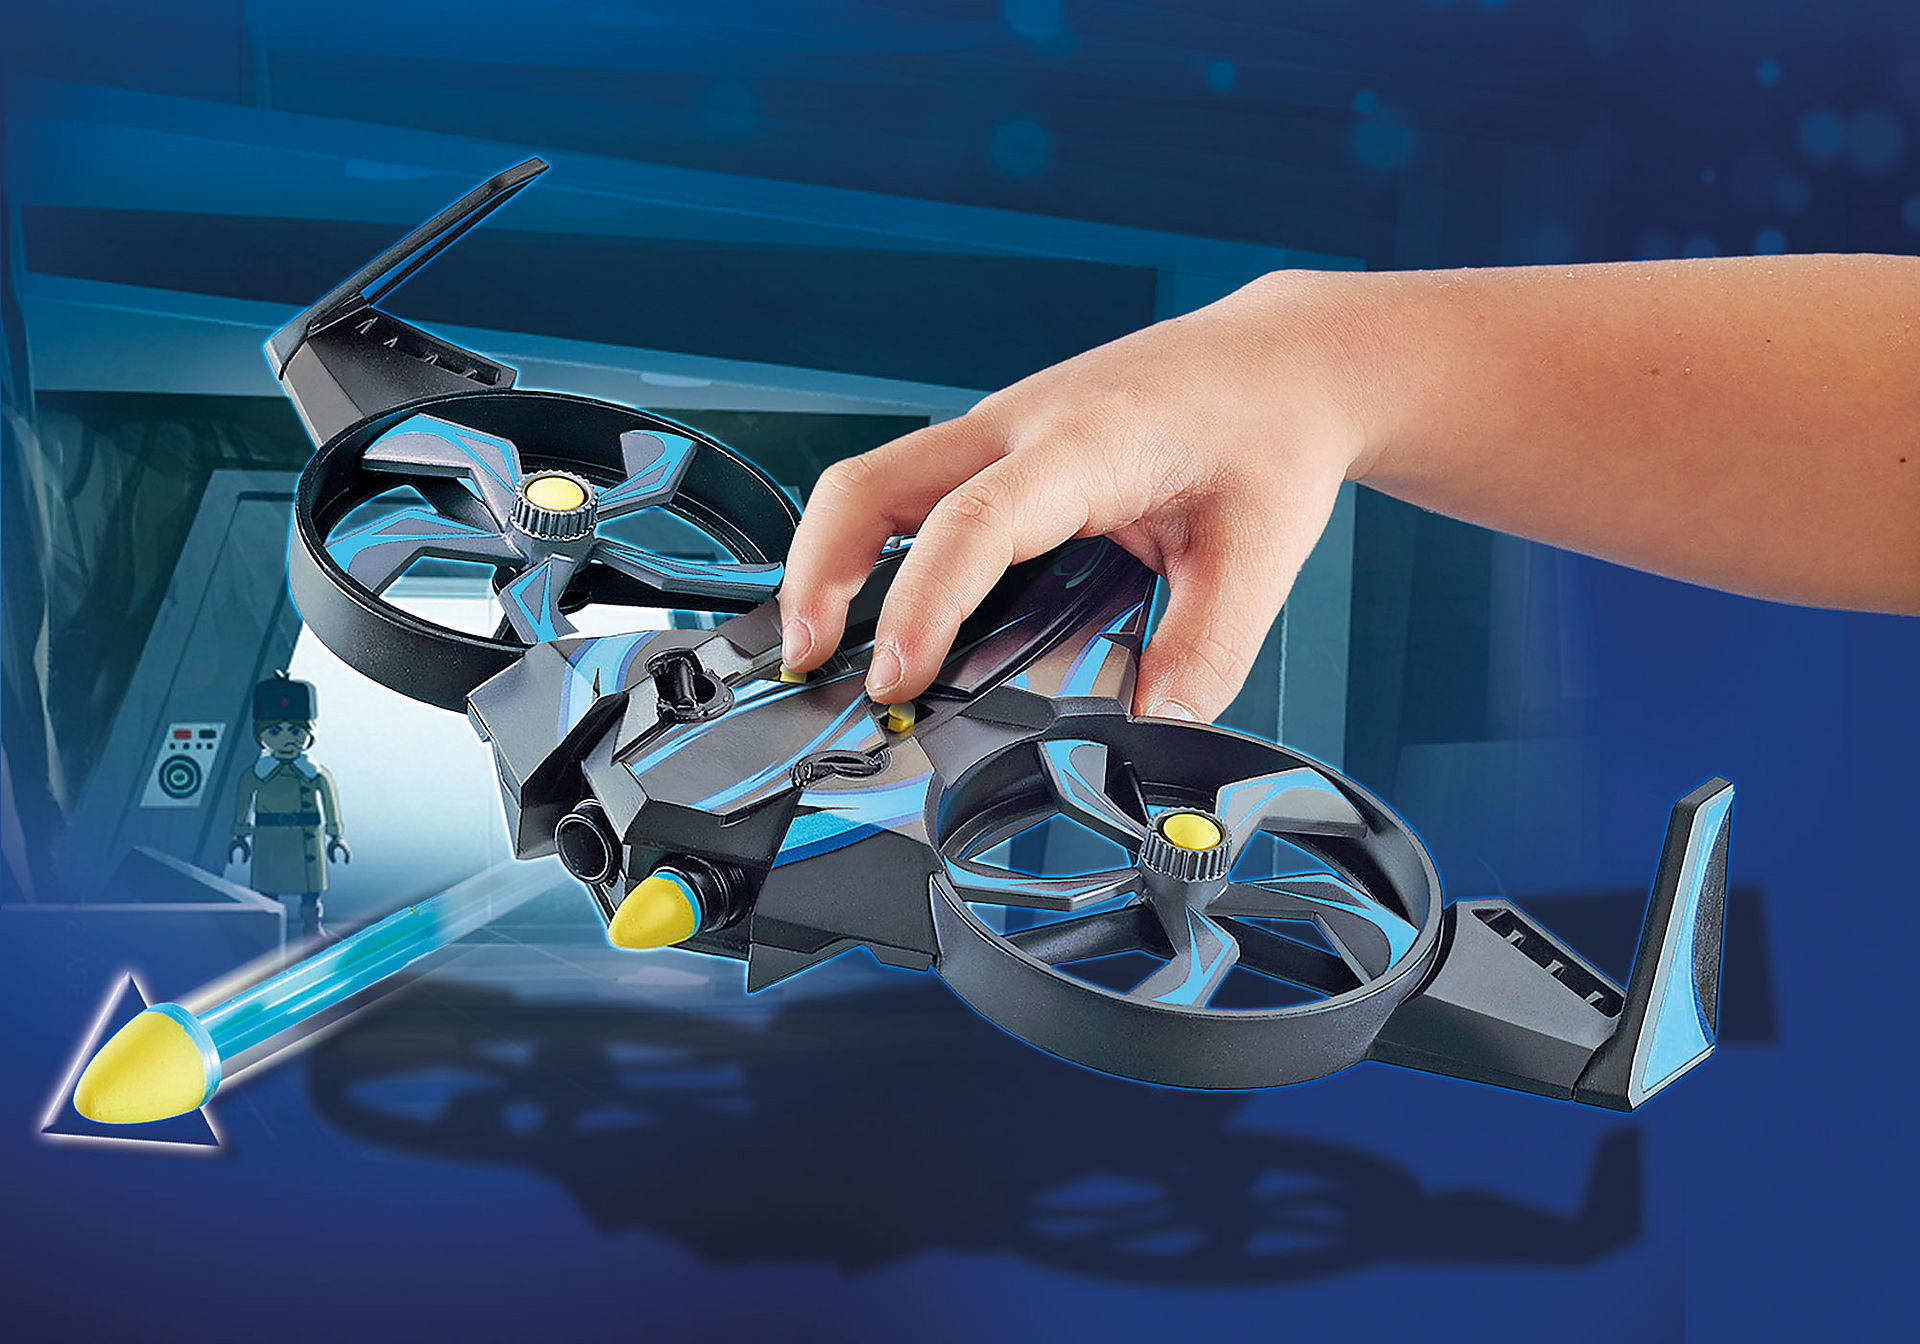 http://media.playmobil.com/i/playmobil/70071_product_extra1/PLAYMOBIL: THE MOVIE Robotitron con drone